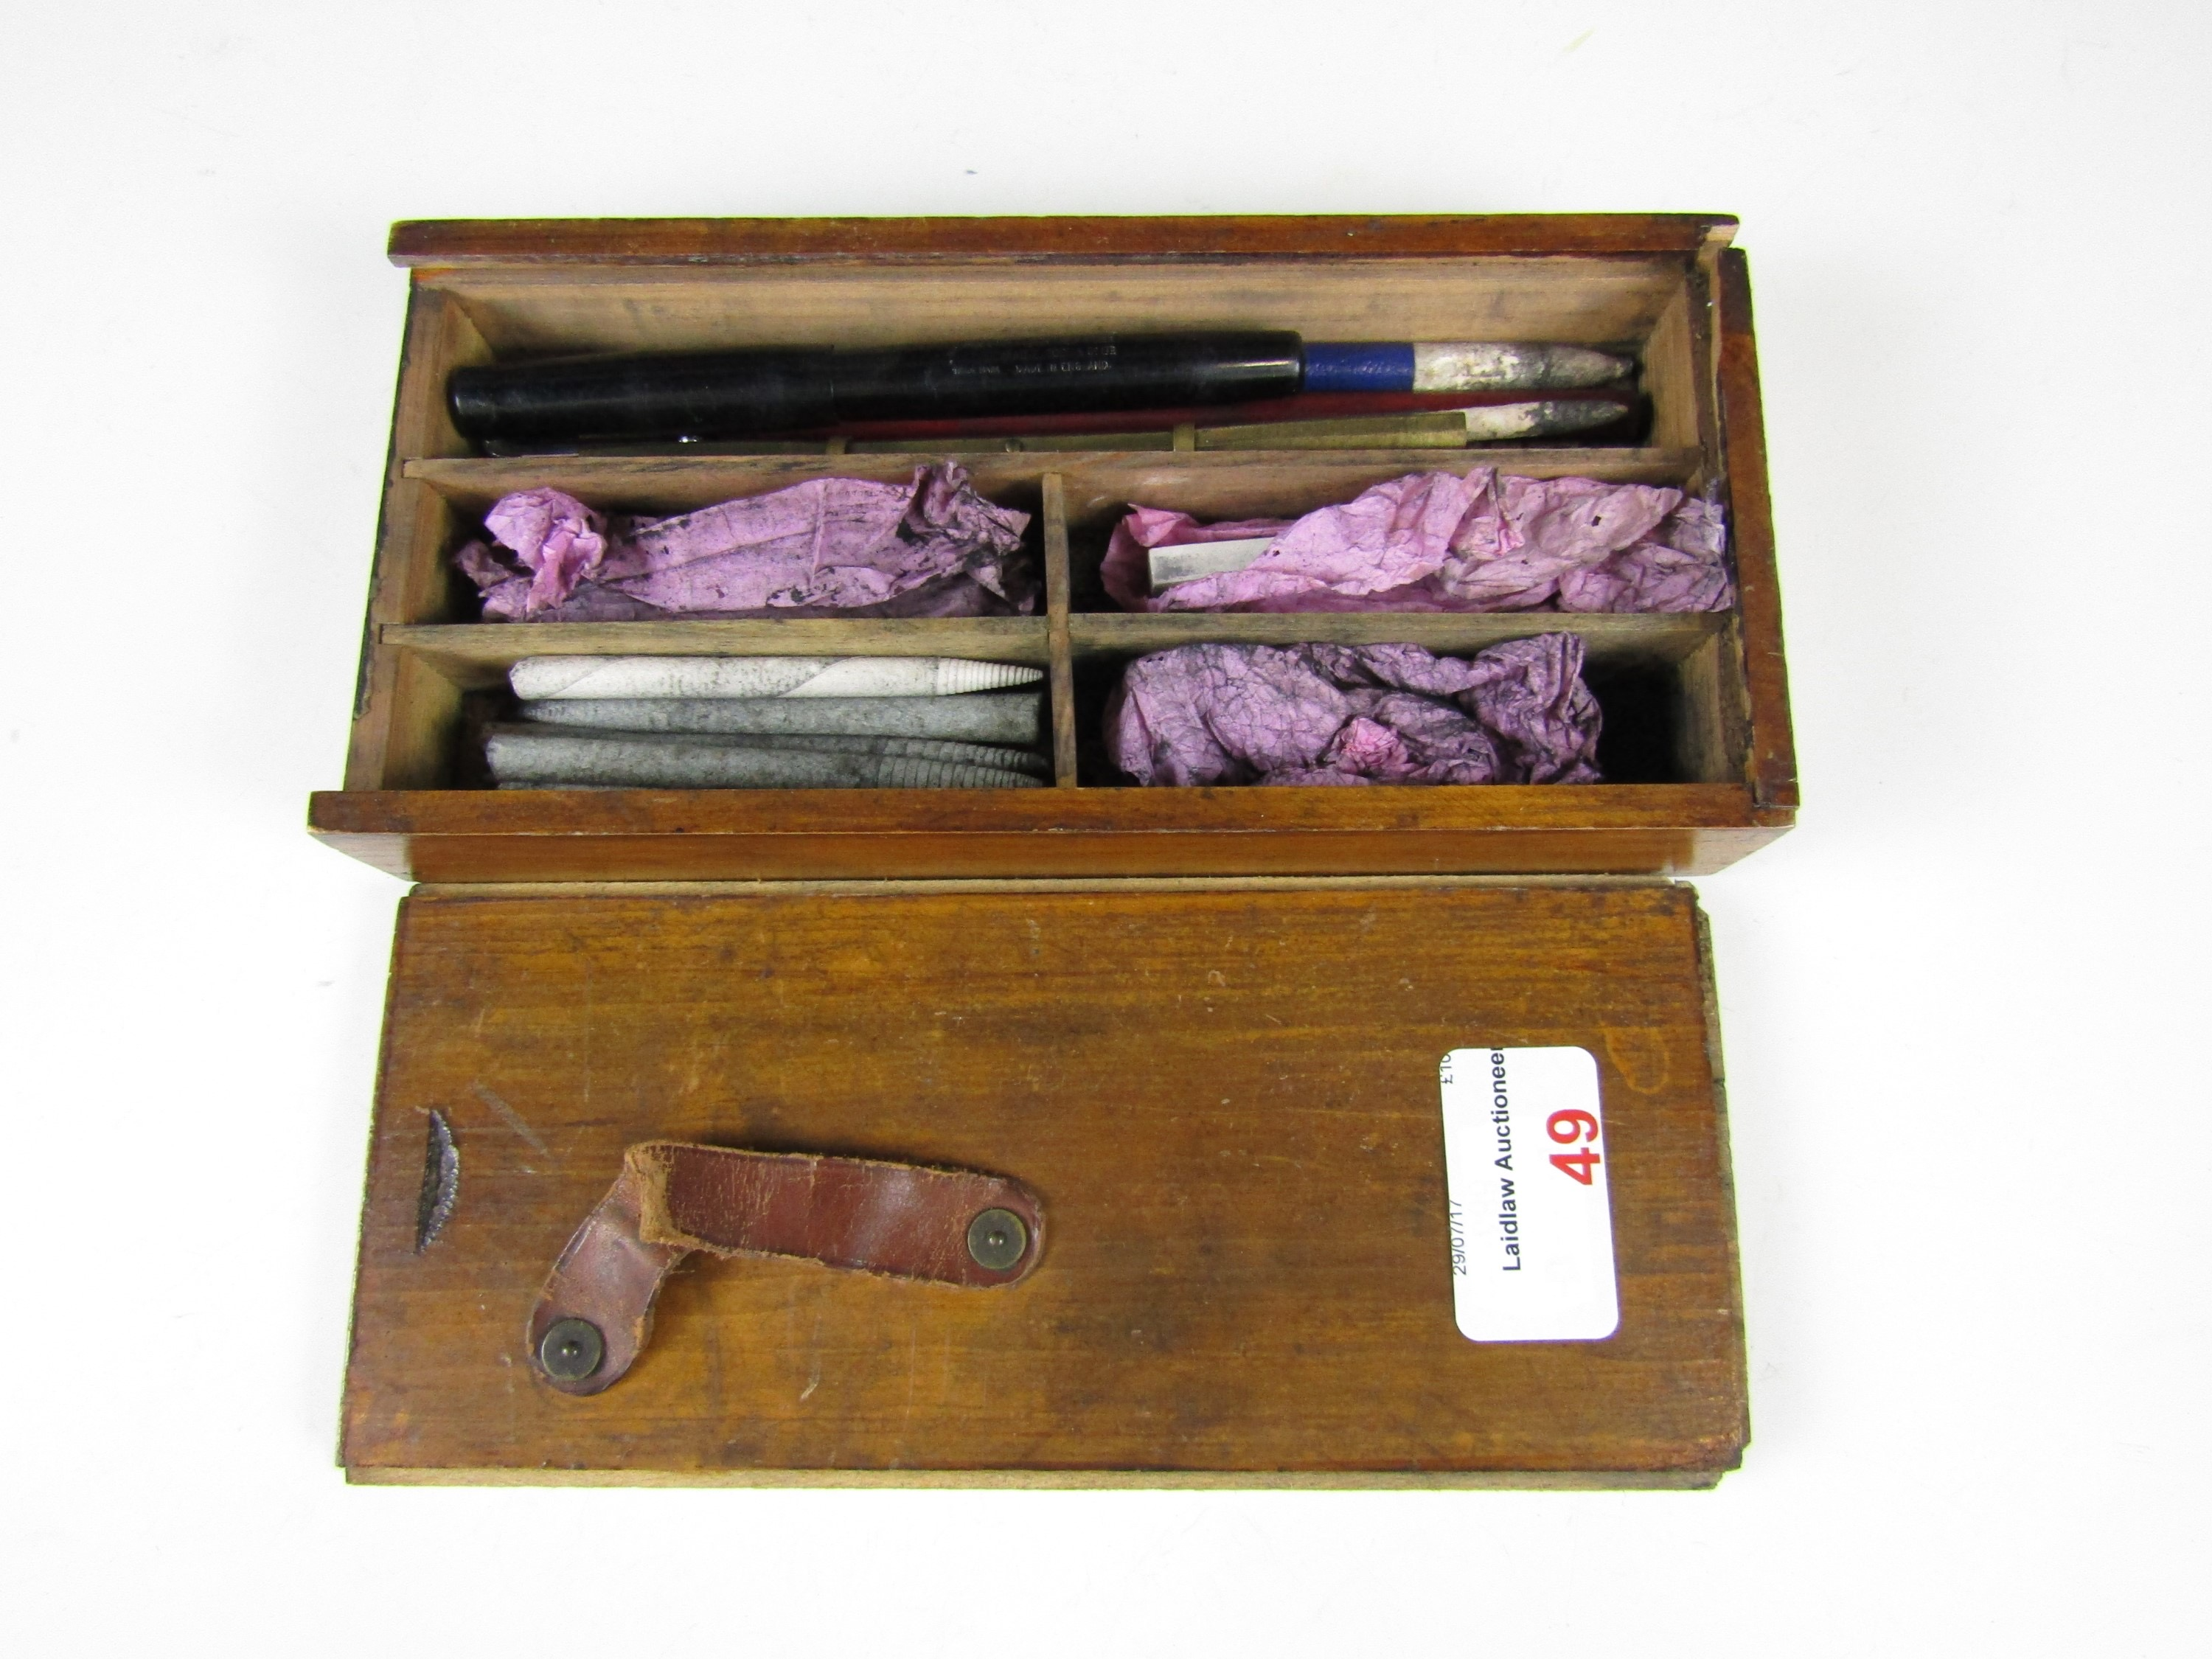 Lot 49 - A charcoal pencil set in period wooden box